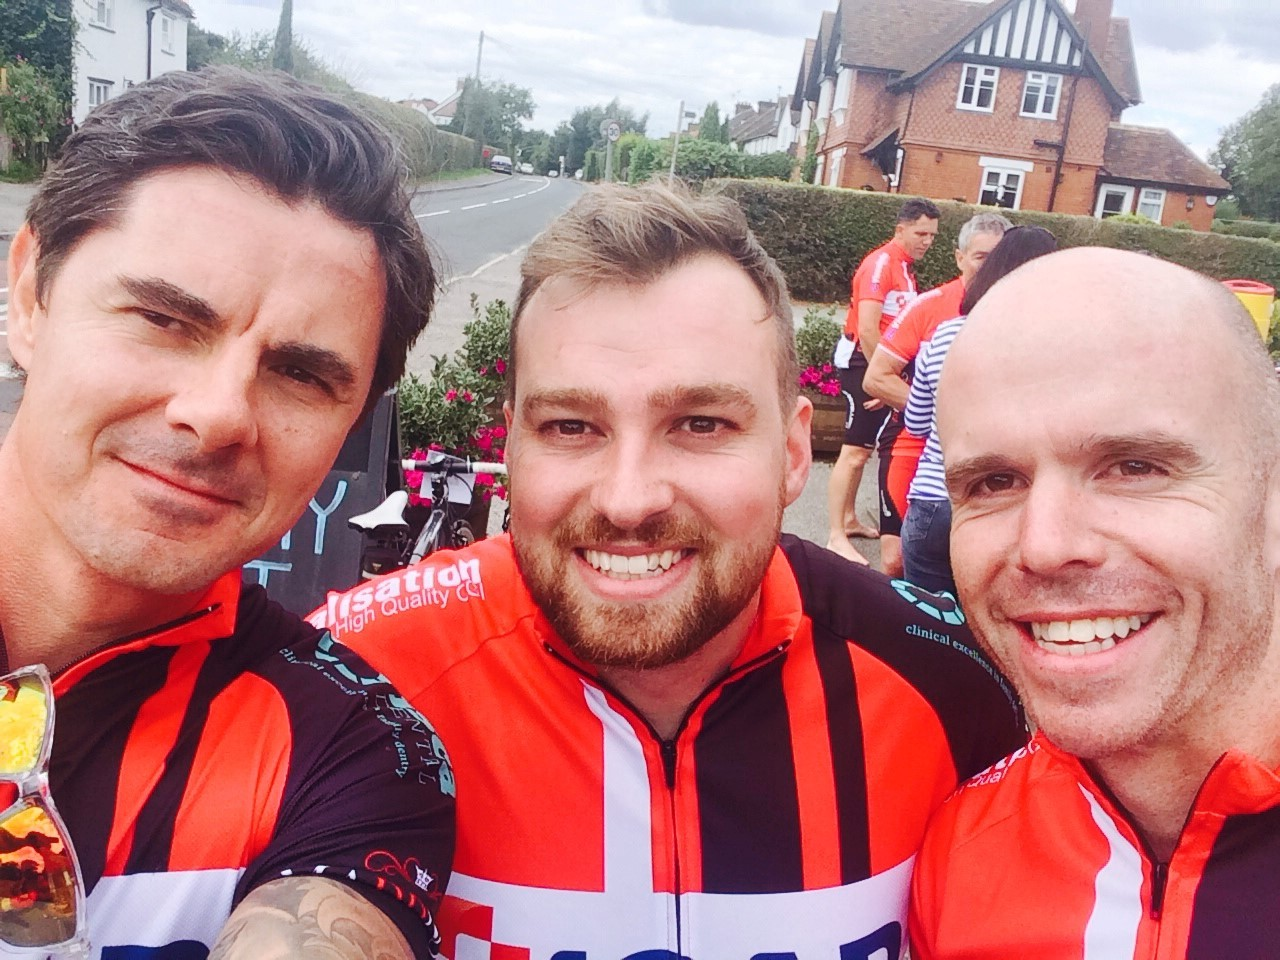 Gavin 2 Stacey riders complete the course